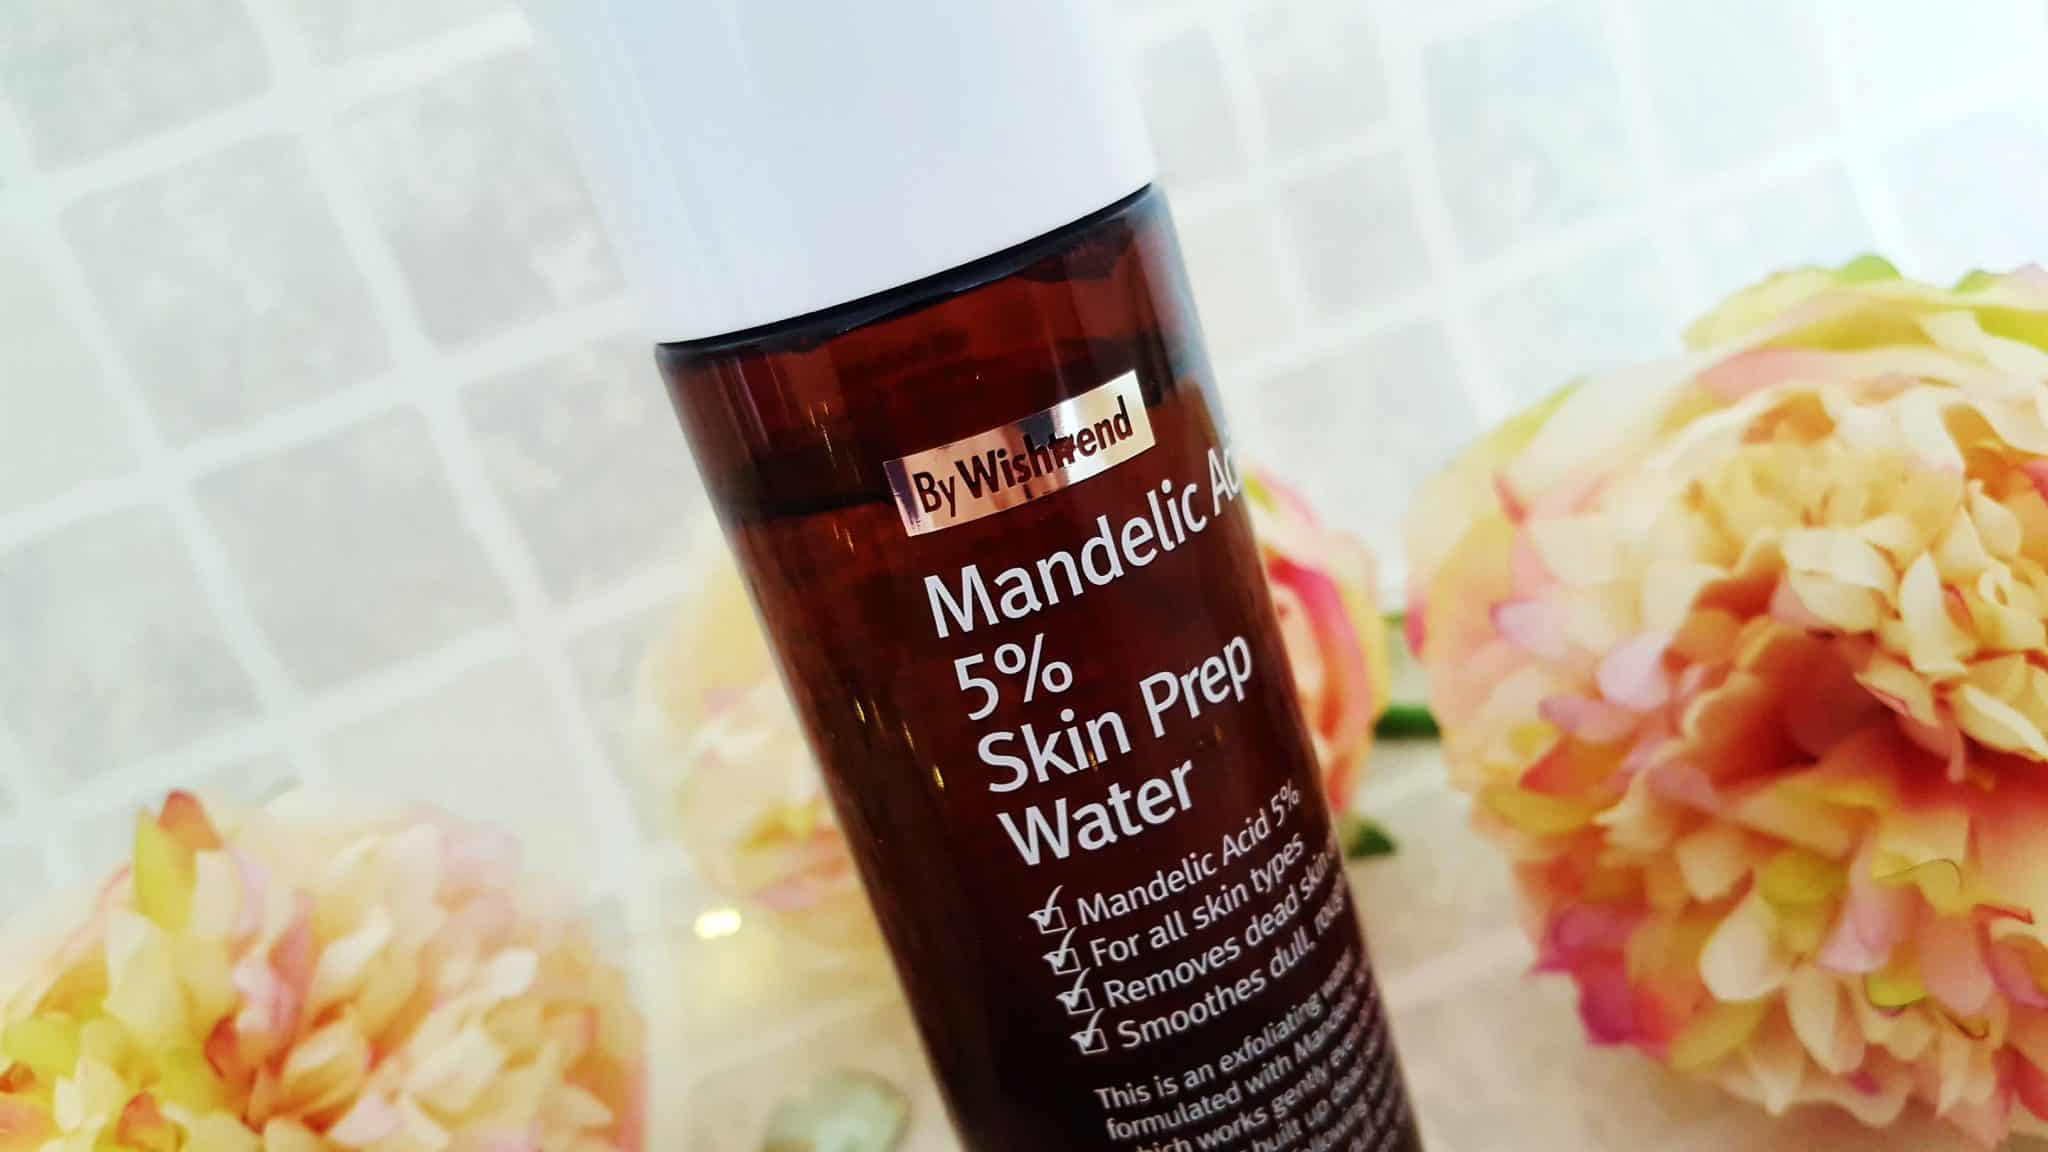 mandelic-acid-skin-prep-water-by-wishtrend-review_www.lisasnotebook.com